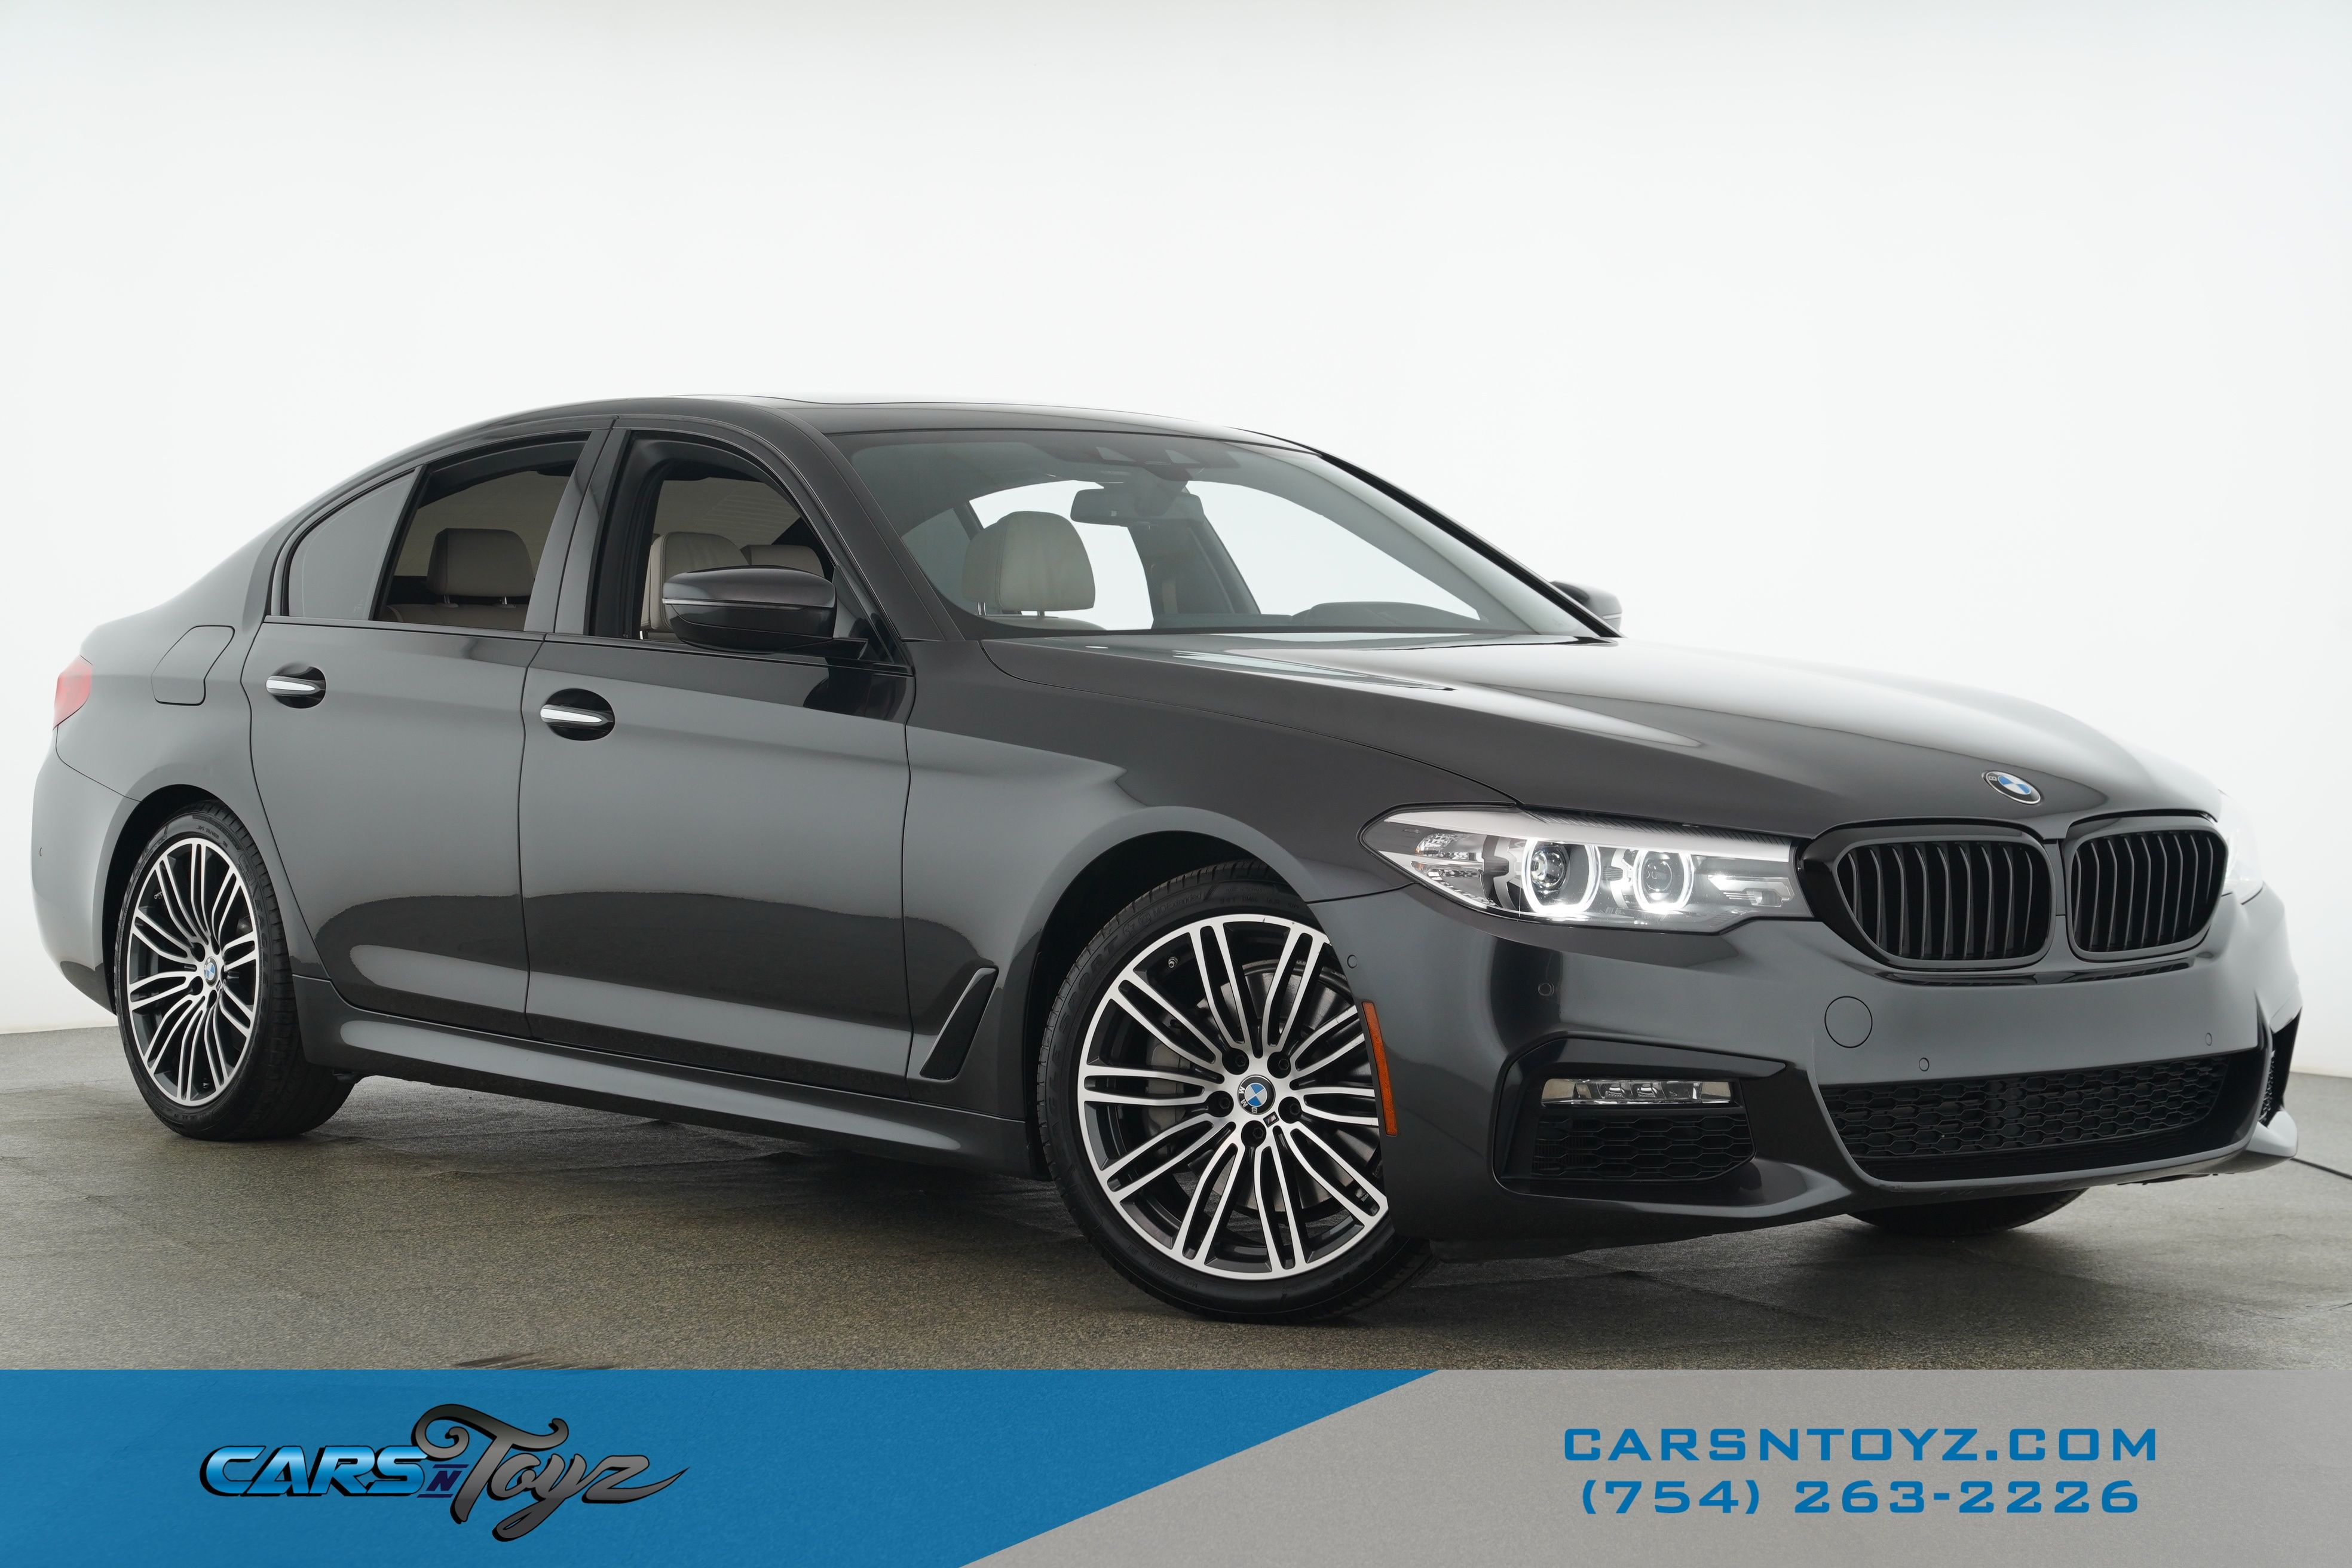 2018 BMW 5 Series 530i Rear Wheel Drive Sedan 4 Dr.